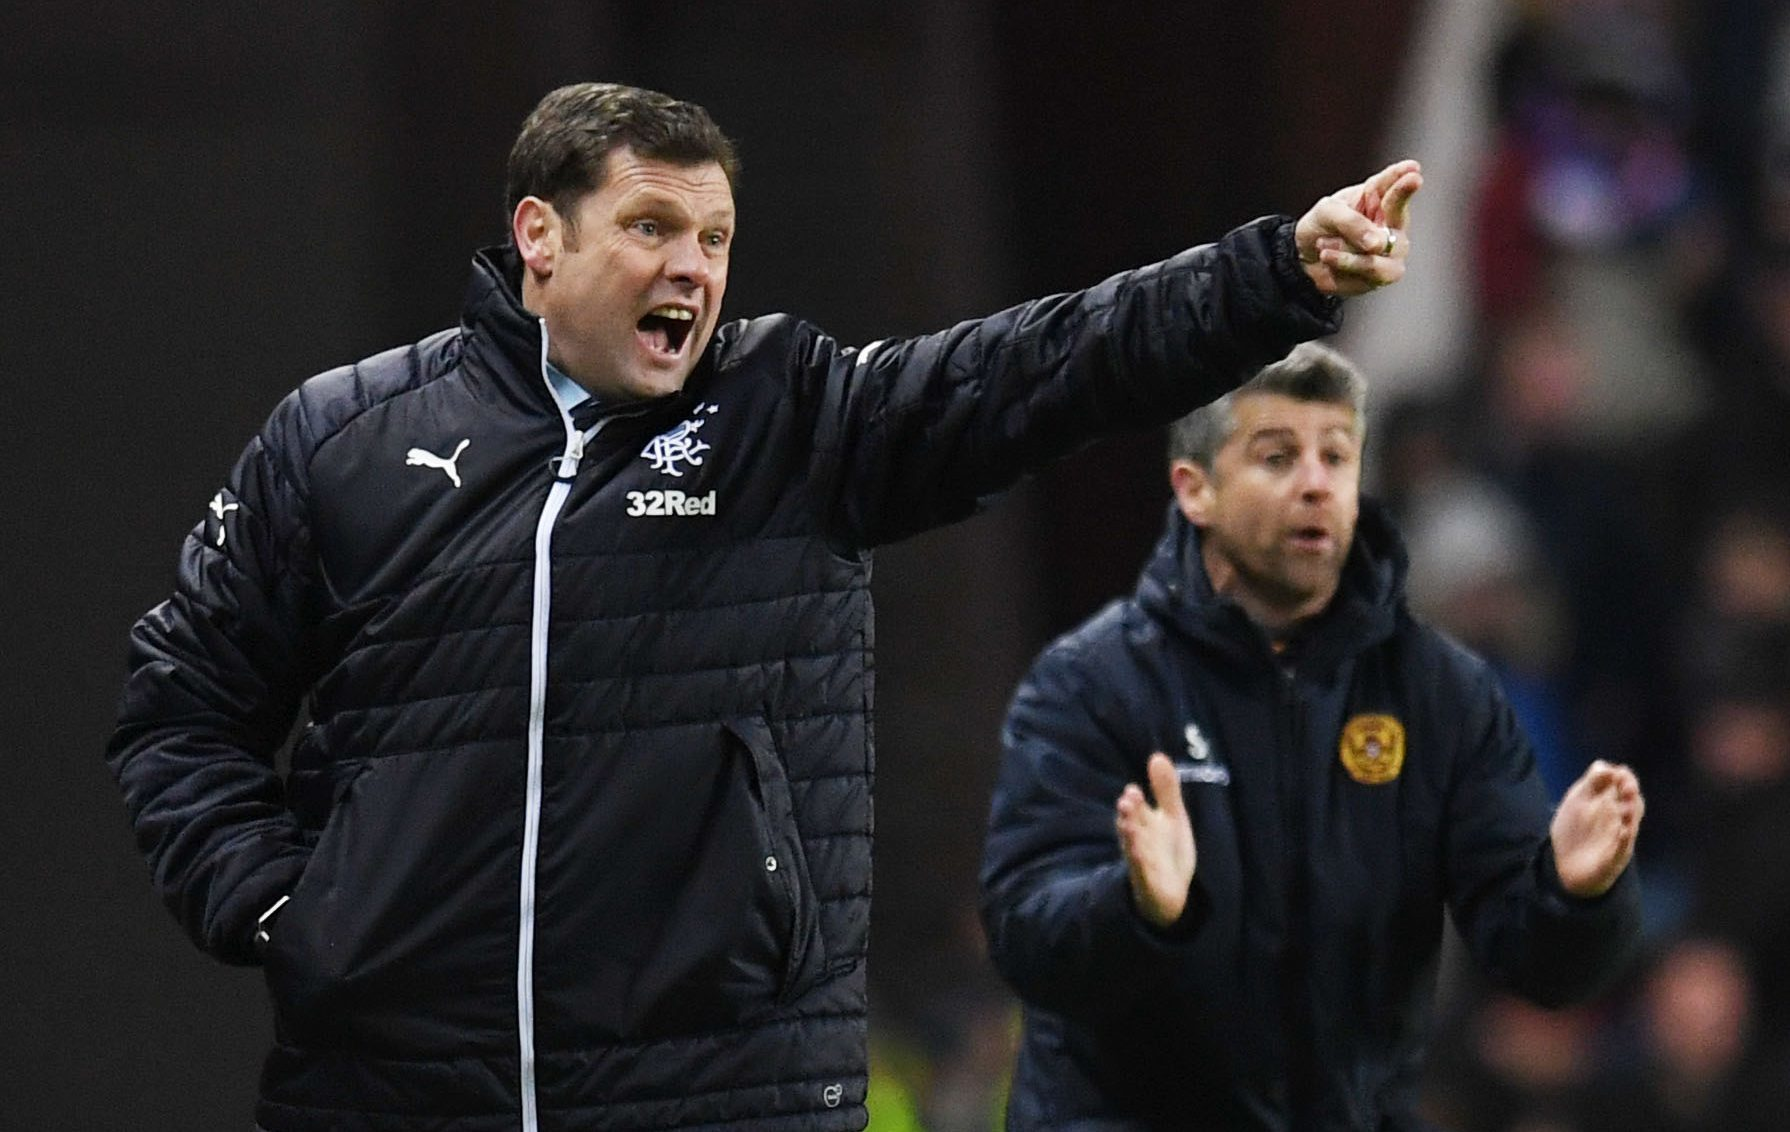 Rangers manager Graeme Murty on the touchline (SNS Group / Craig Williamson)